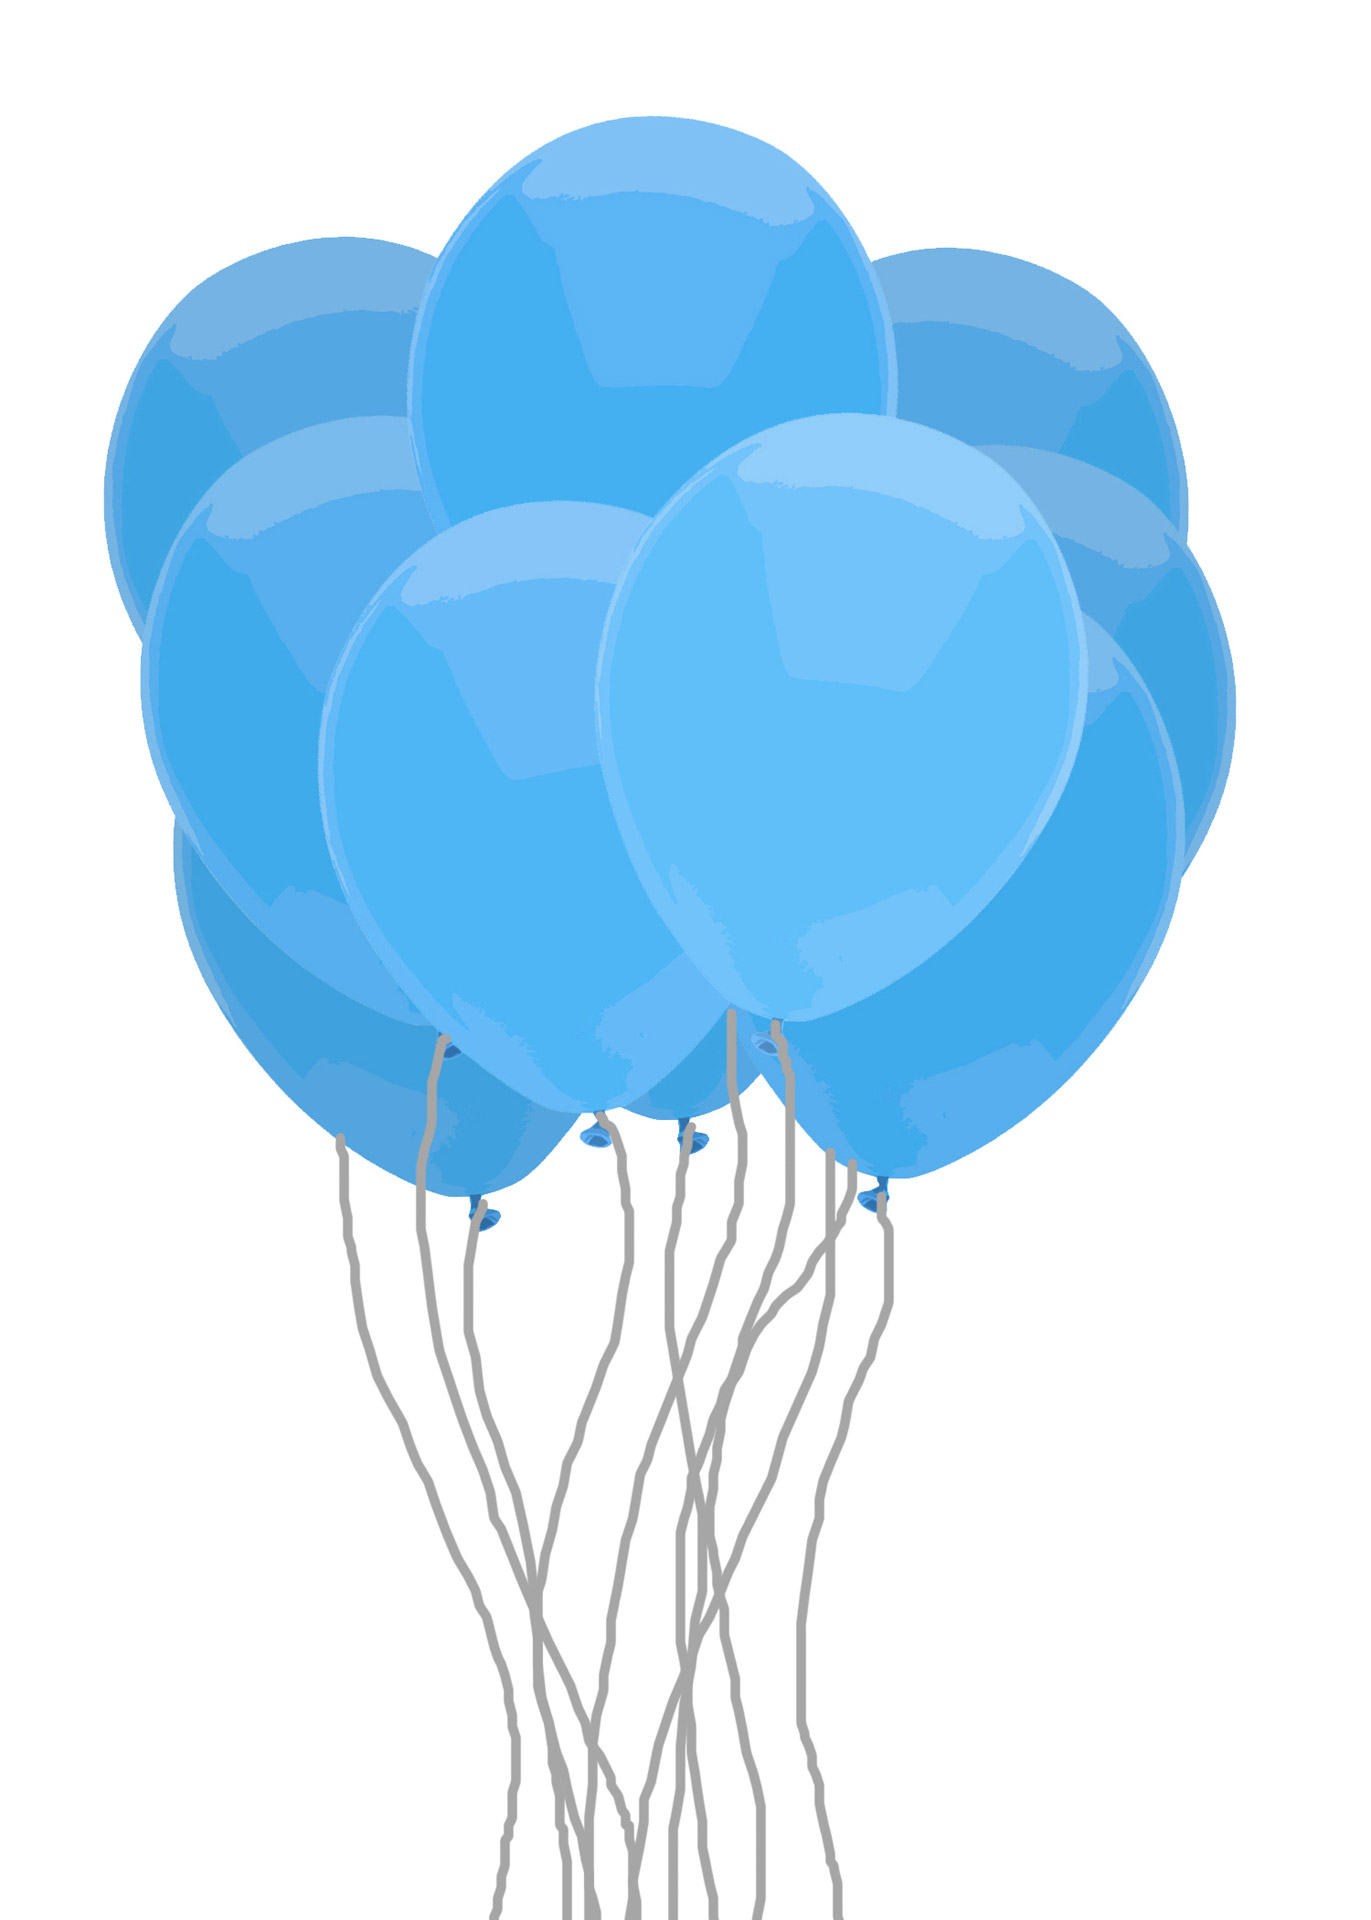 A group of blue balloons.